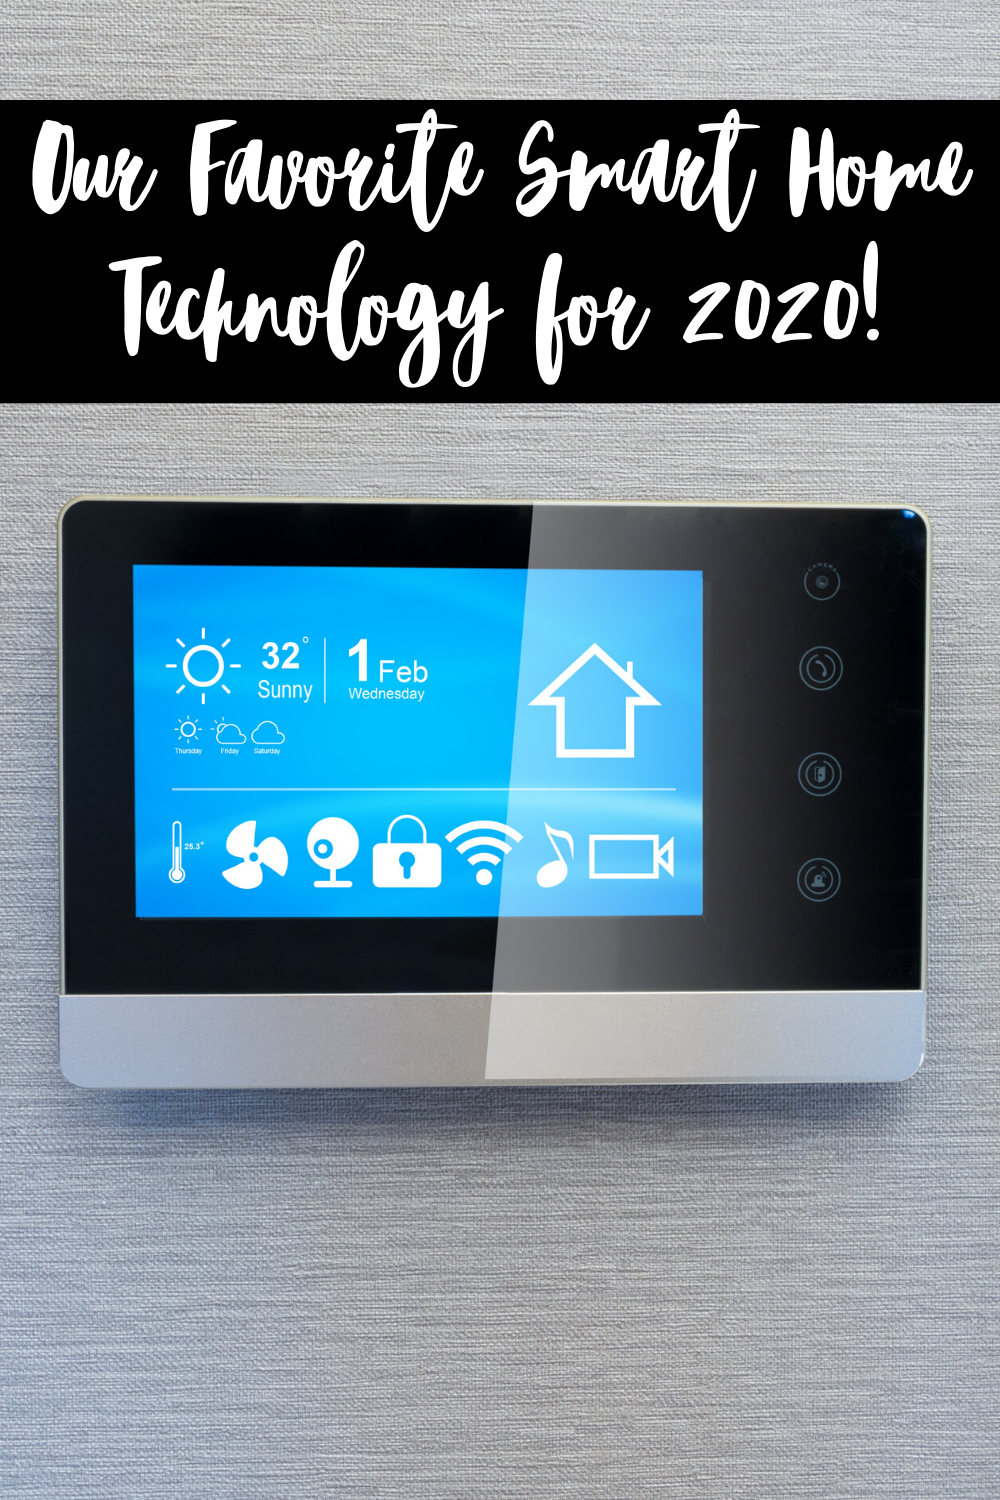 Looking to make some smart home technology improvements in your home? How about a renovated apartments in Dallas? We are sharing our favorite smart home technology as well as the renovations we're making to our MCLife communities here in Dallas. Check it out below!